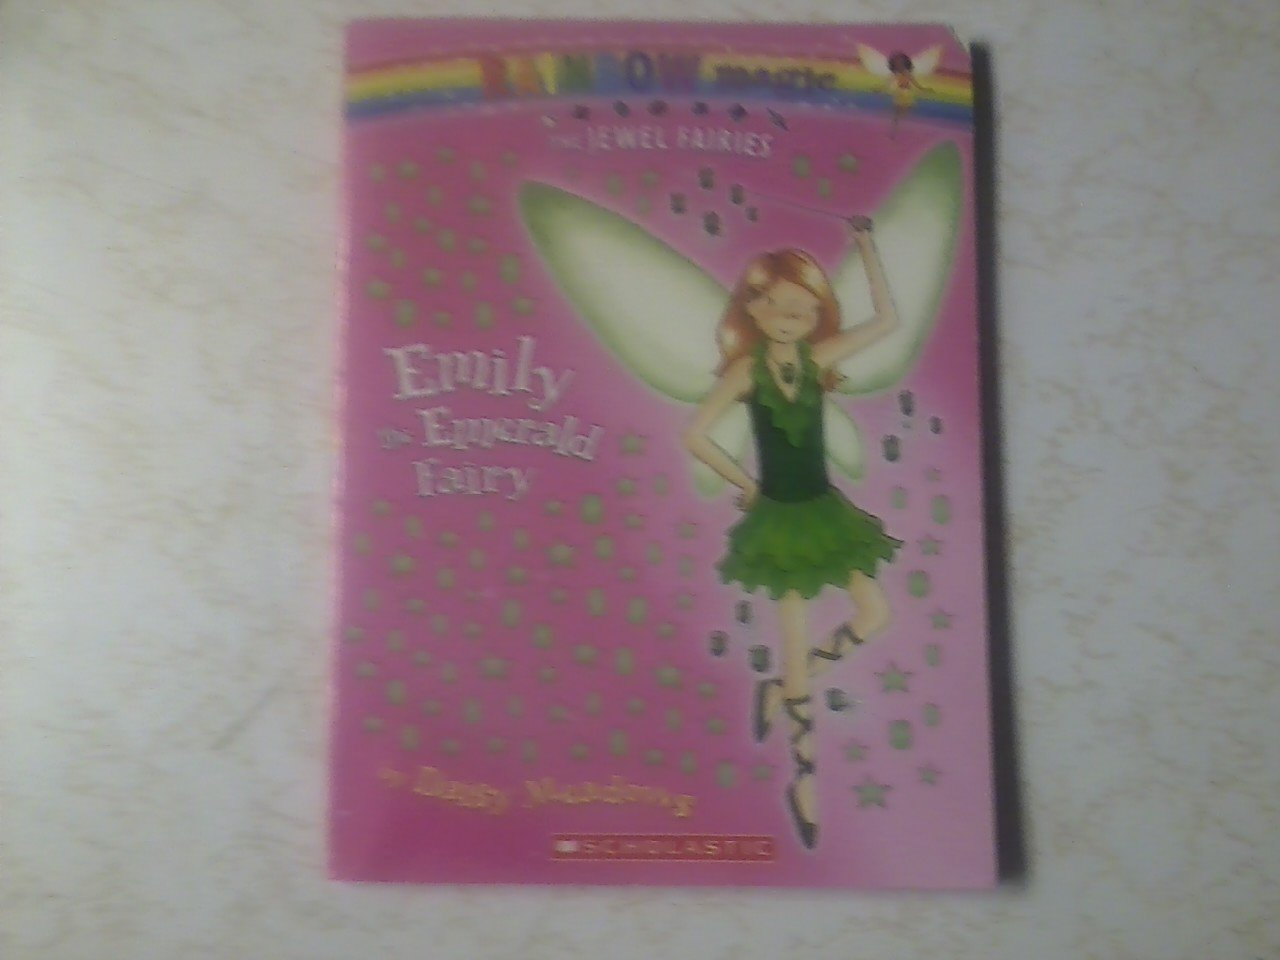 Download Emily the Emerald Fairy #3 The Jewel Fairies PDF